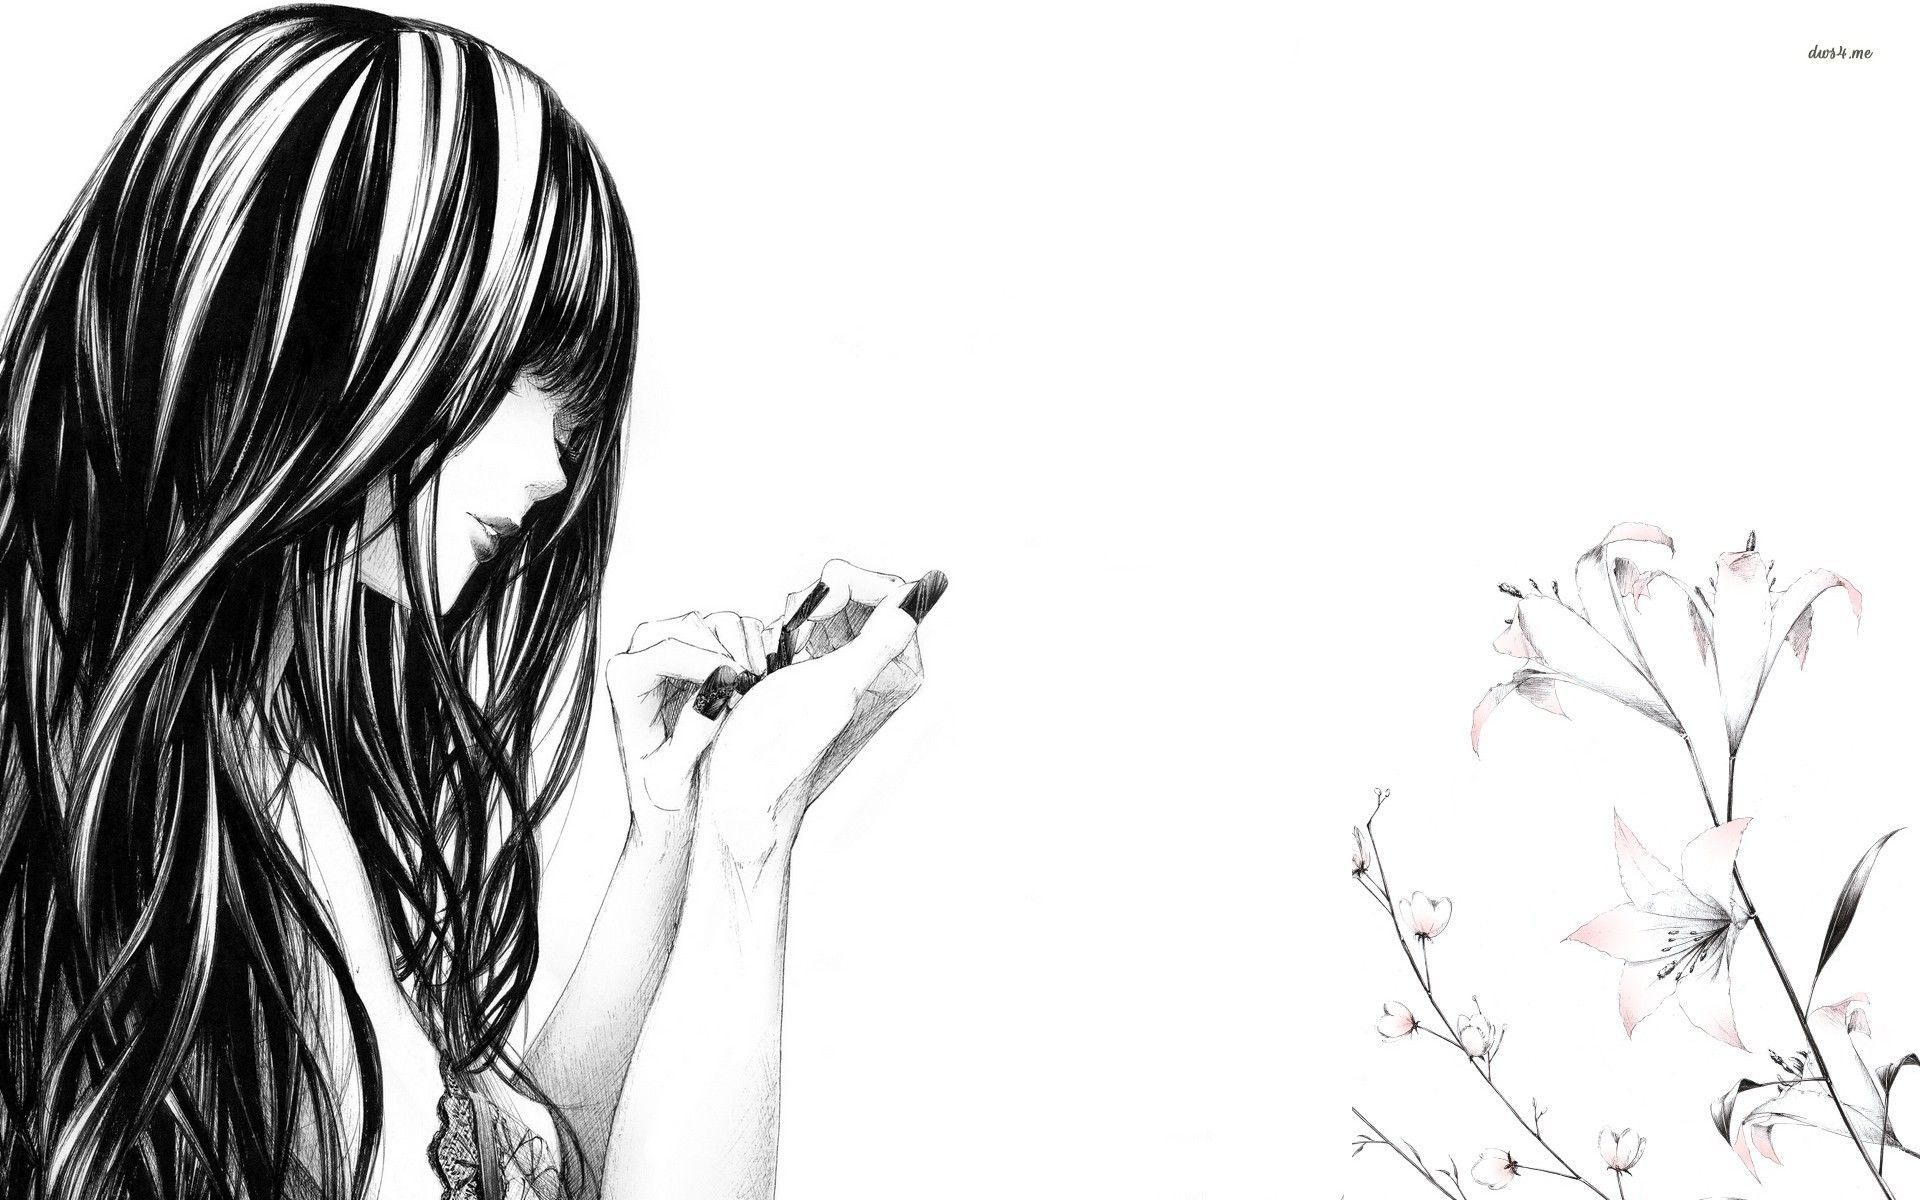 Drawing of a woman wallpaper | Photography + Art + Design ...